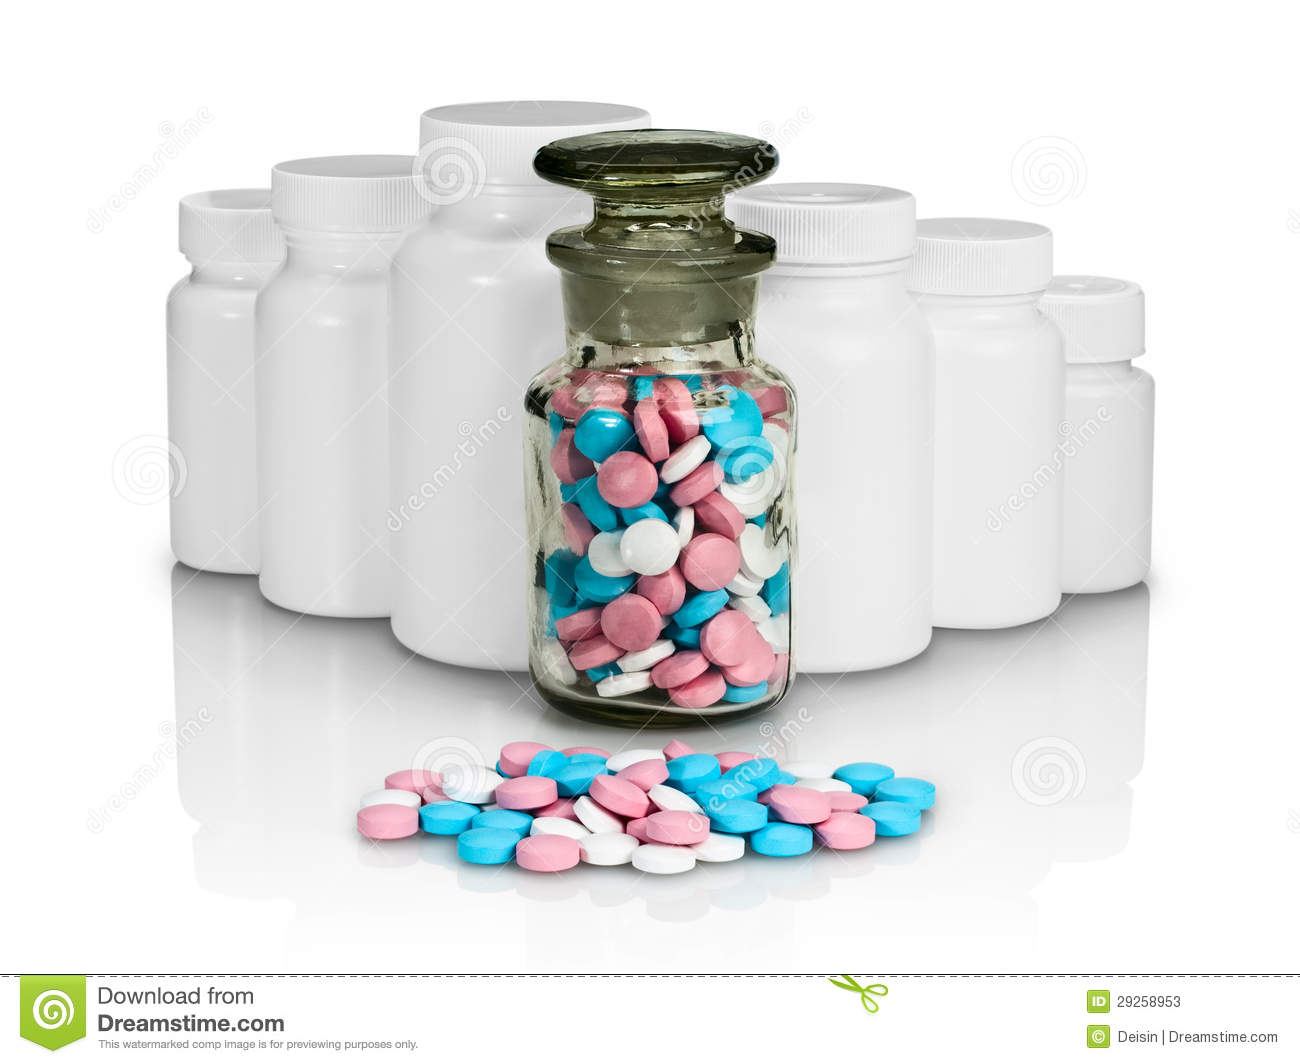 Small group a pill against small bottles with pills stock for Small pill bottles